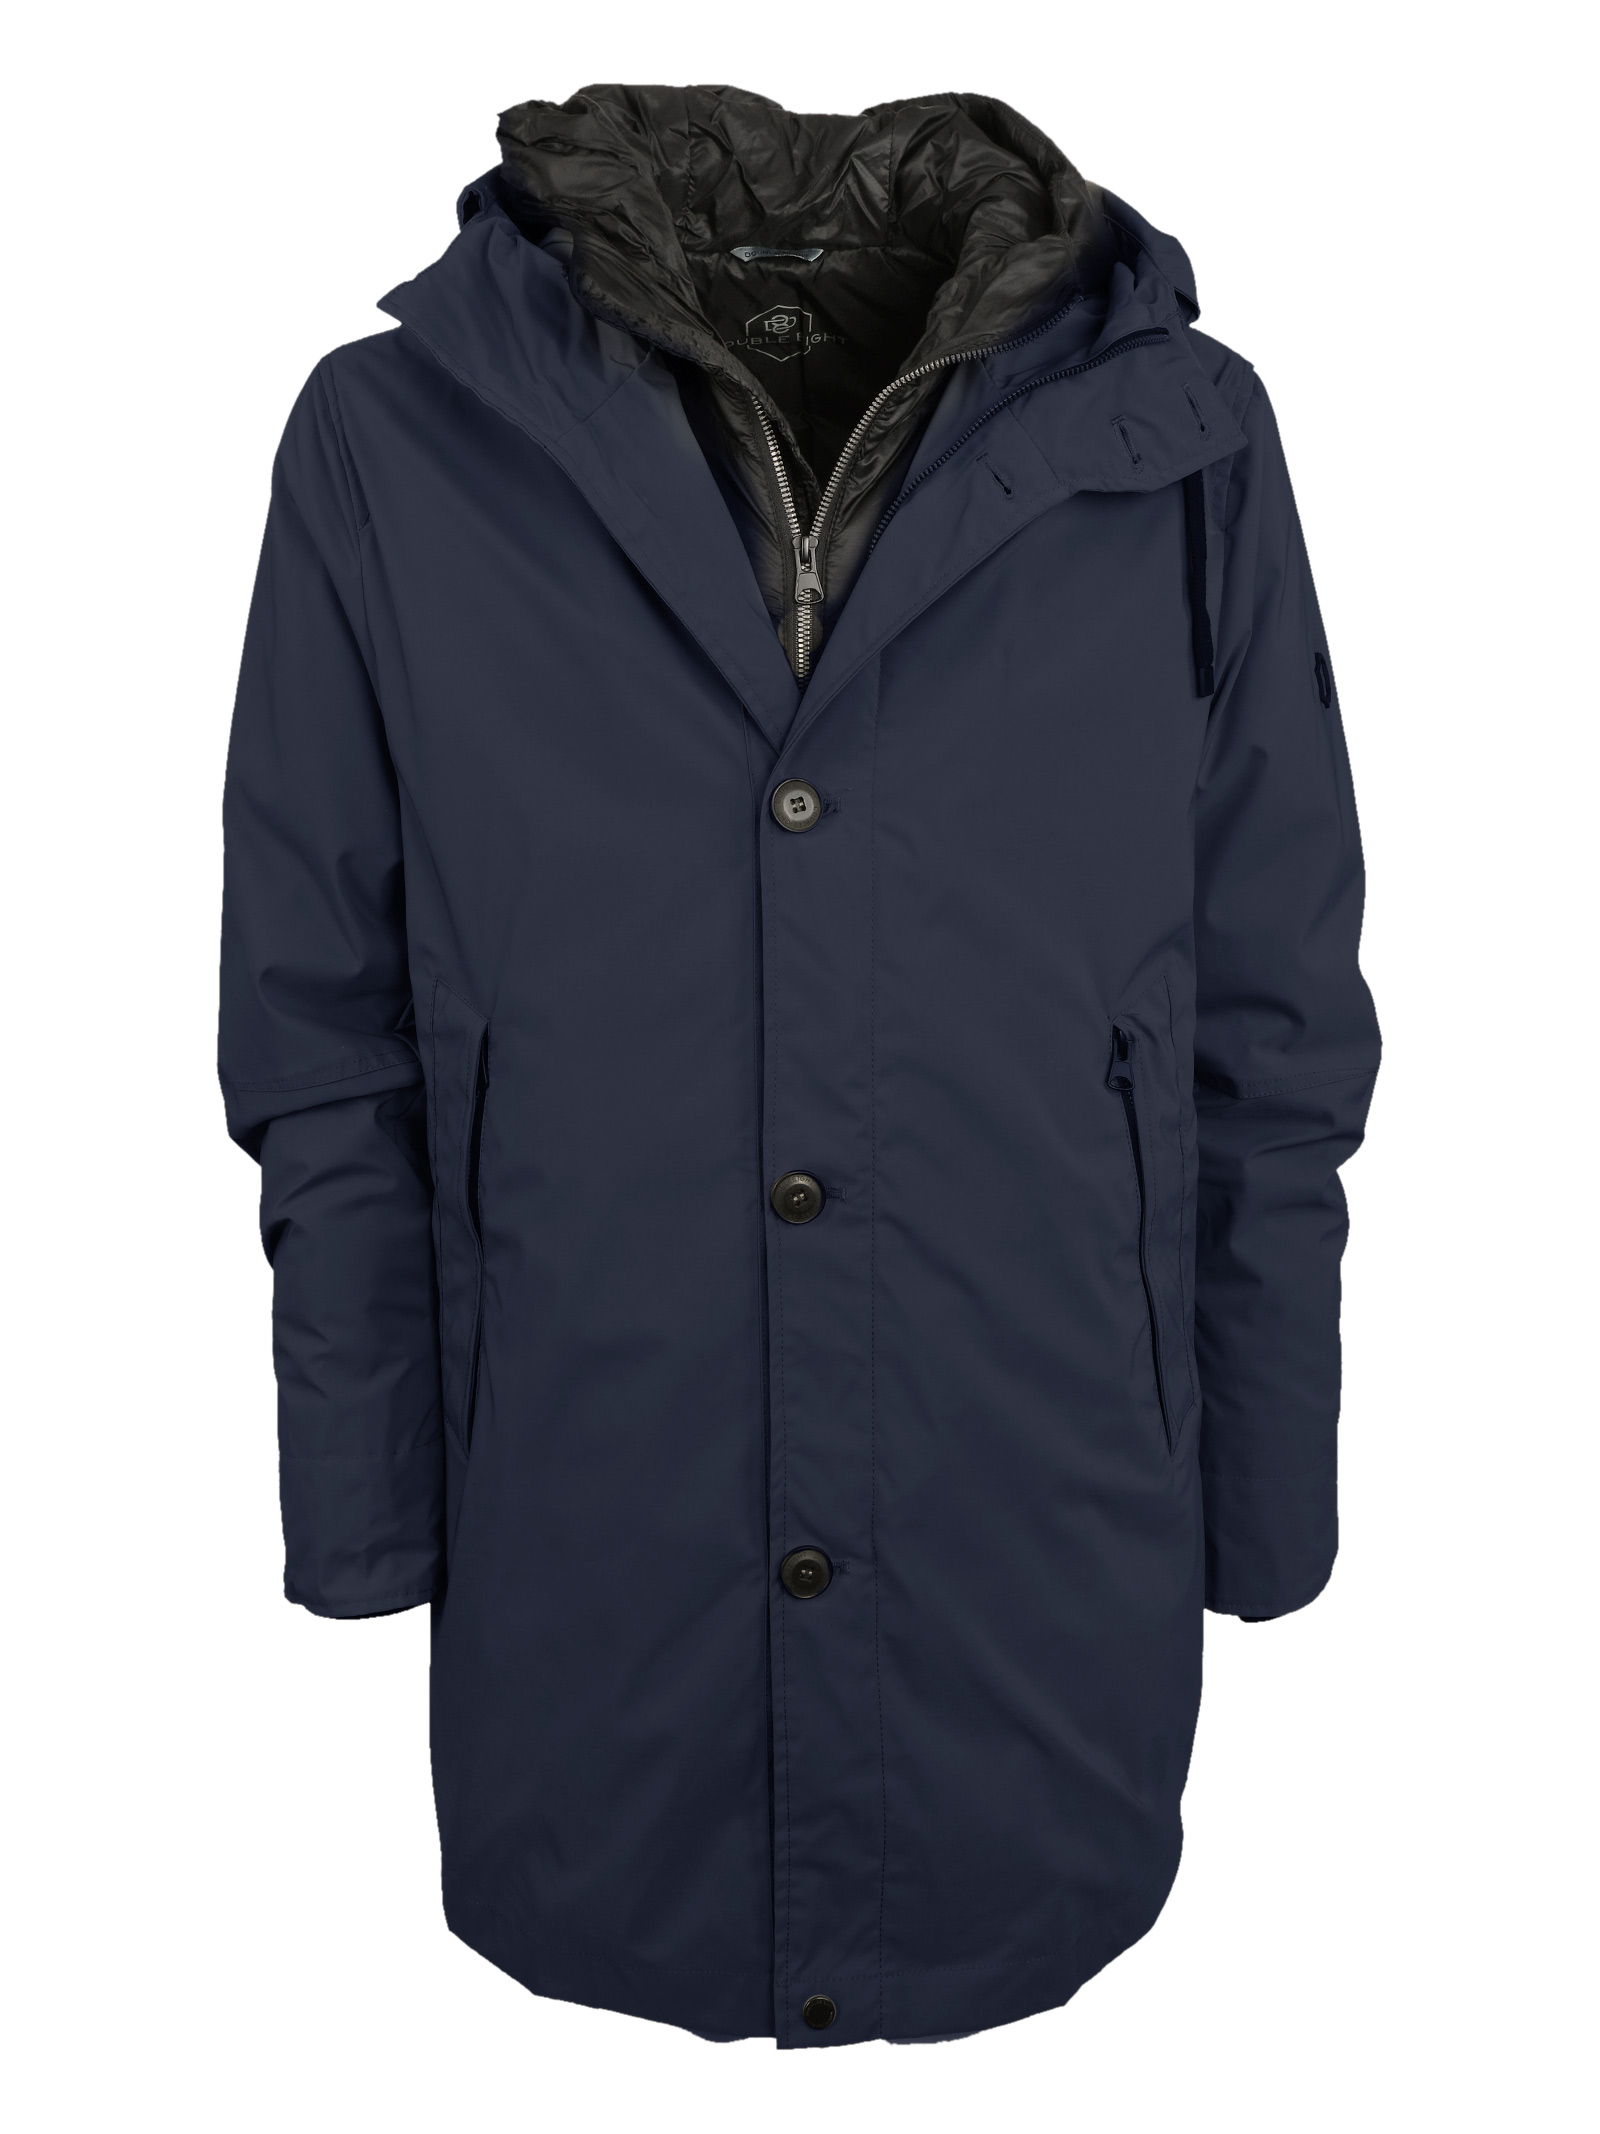 Long double jacket, DOUBLE 8 | Jackets | GERM P186B148